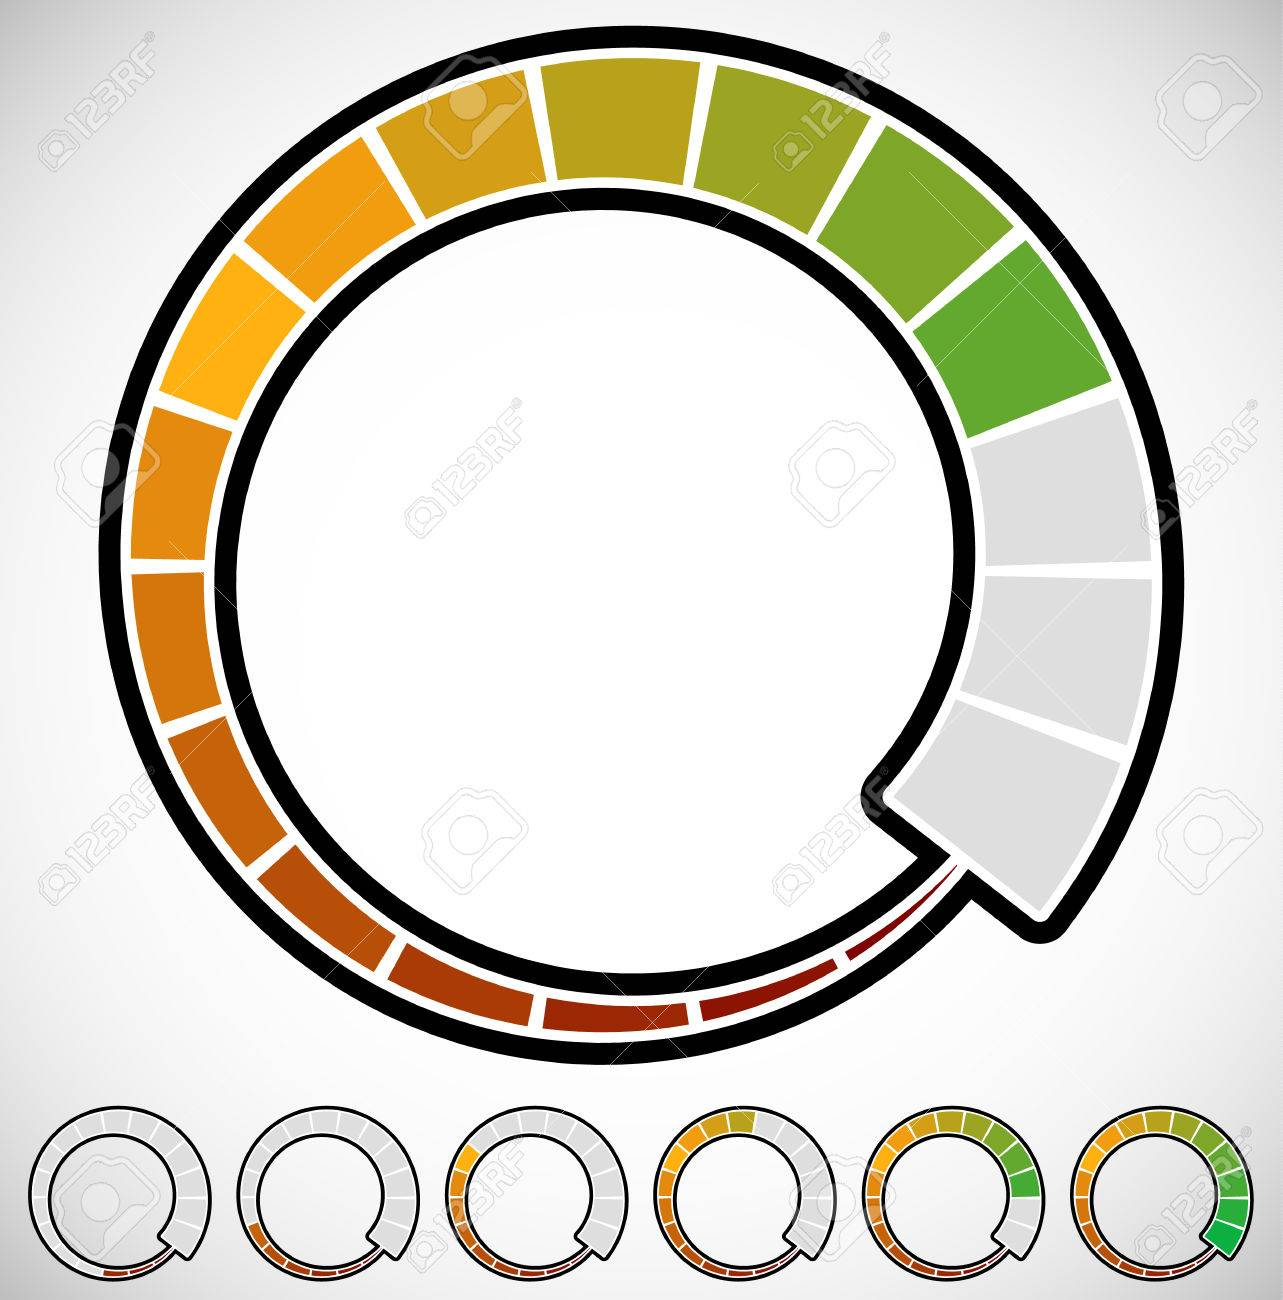 1283x1300 Vector Illustration Of Rounded Progress Indicator, Meter Element